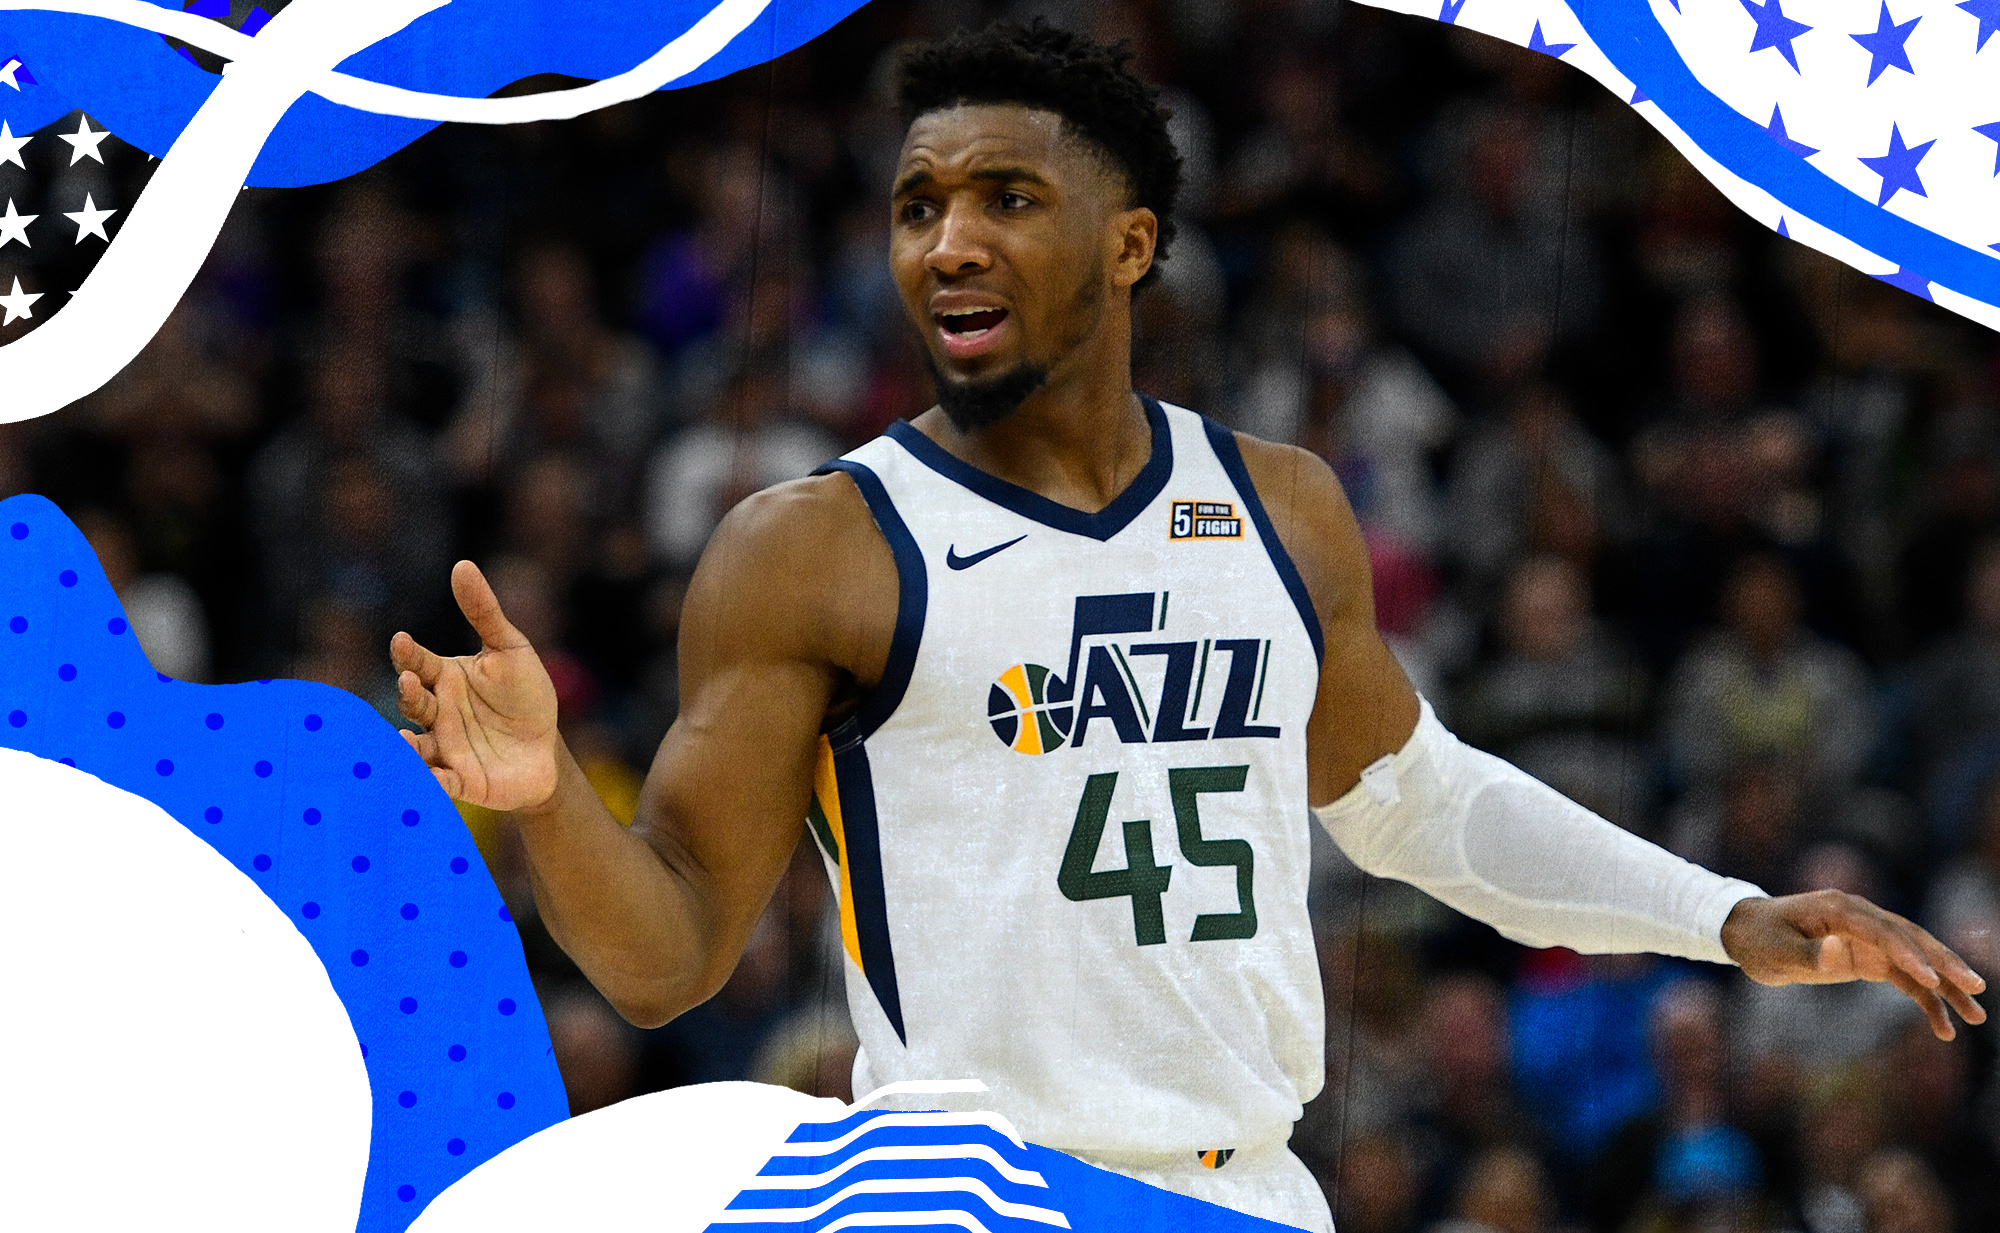 Donovan Mitchell frustrated on the court.